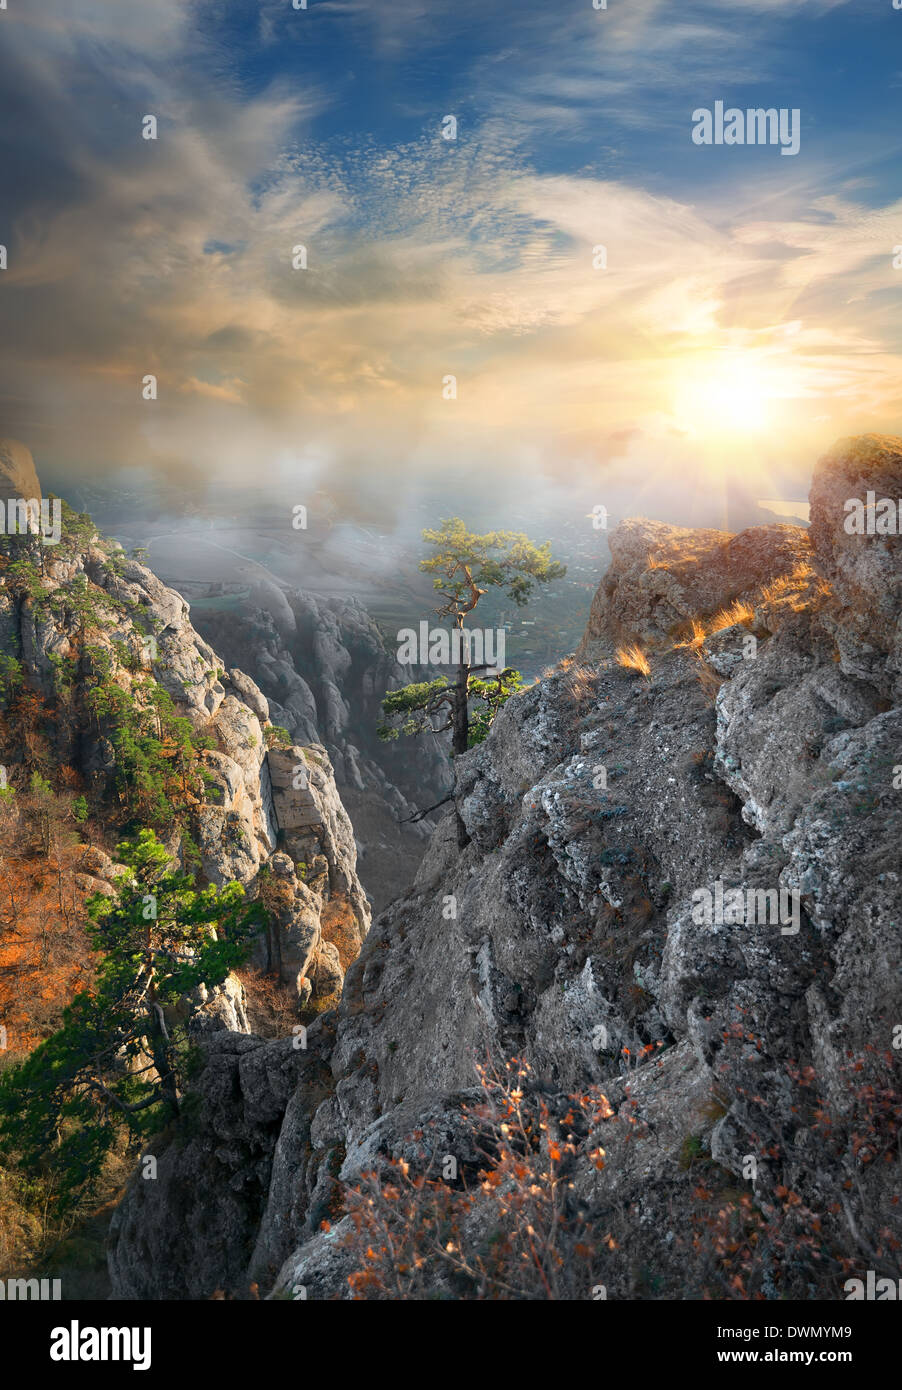 Fog in the mountains in sunny morning - Stock Image